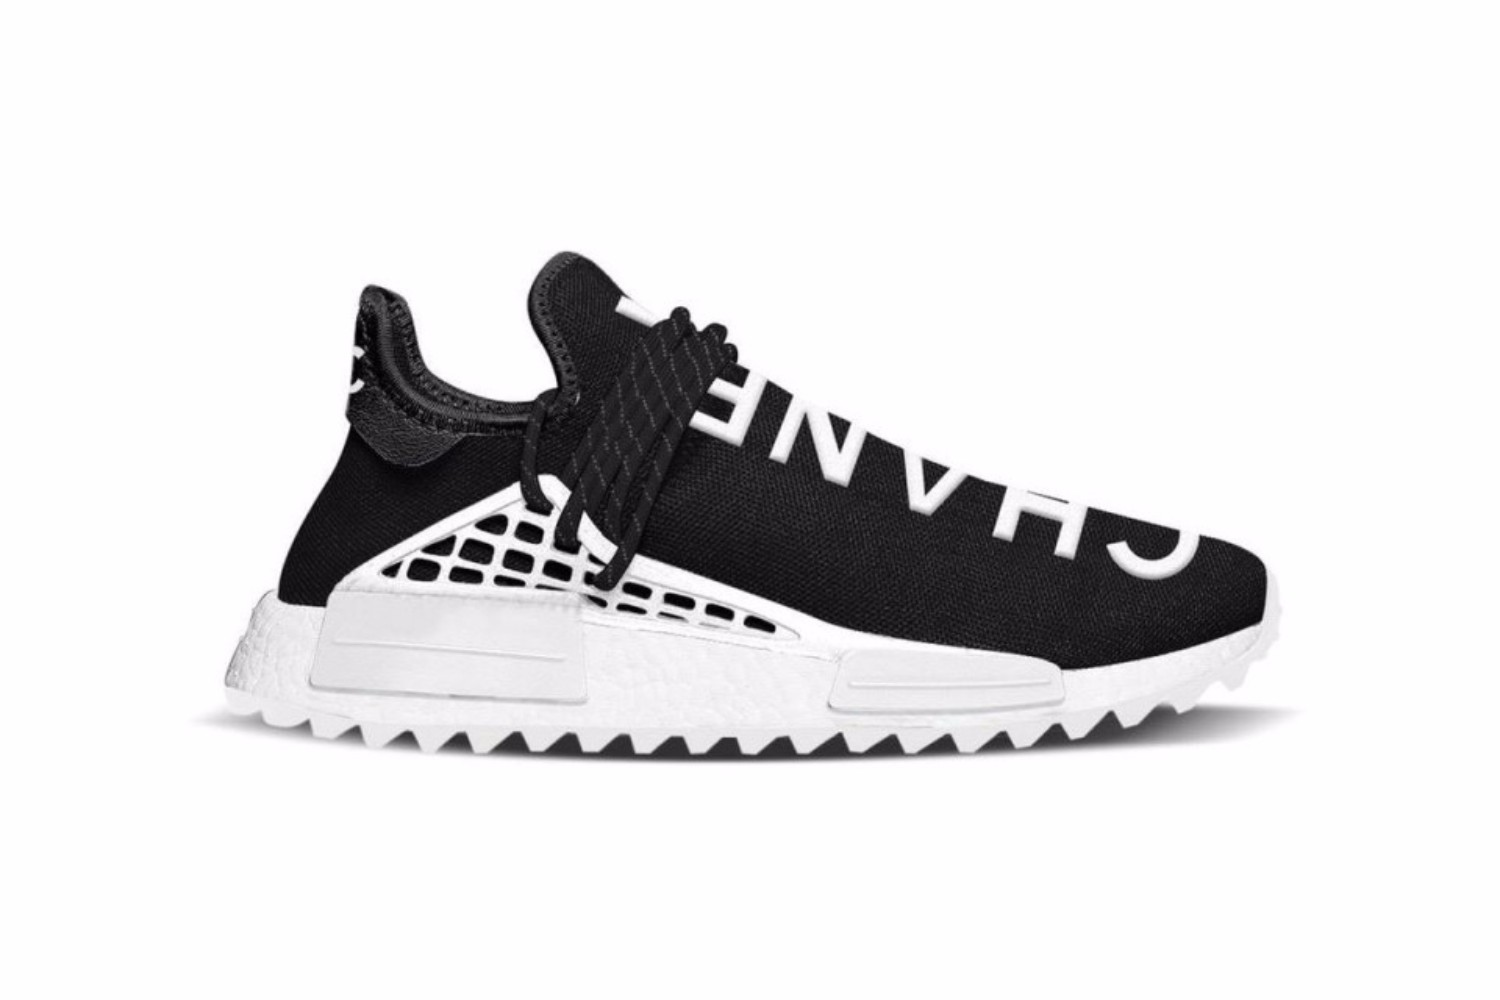 How & Where to Purchase the Chanel x adidas x Pharrell NMD Hu